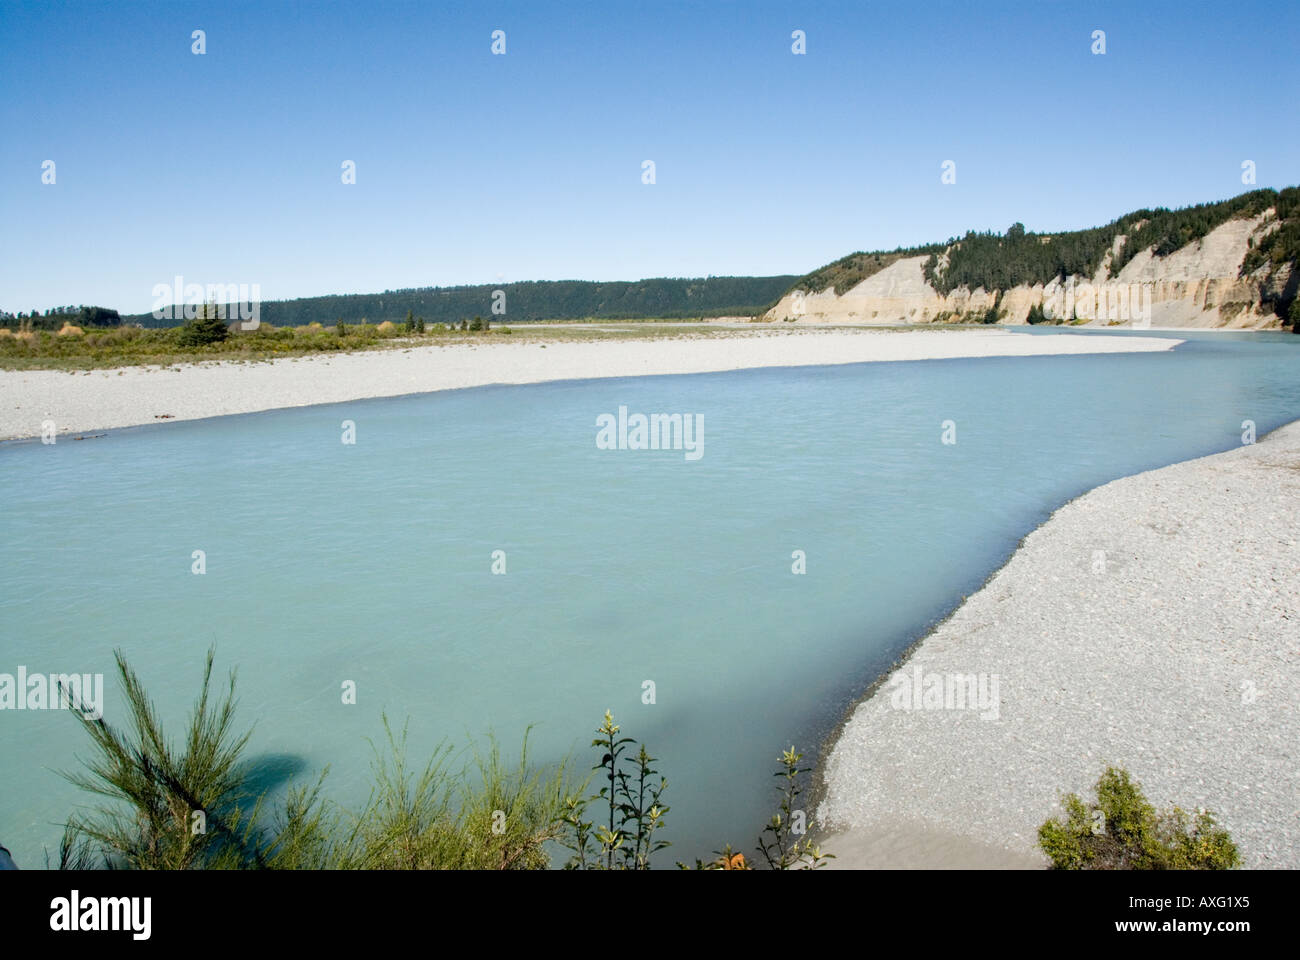 Shingle River Bed Stock Photos & Shingle River Bed Stock Images - Alamy